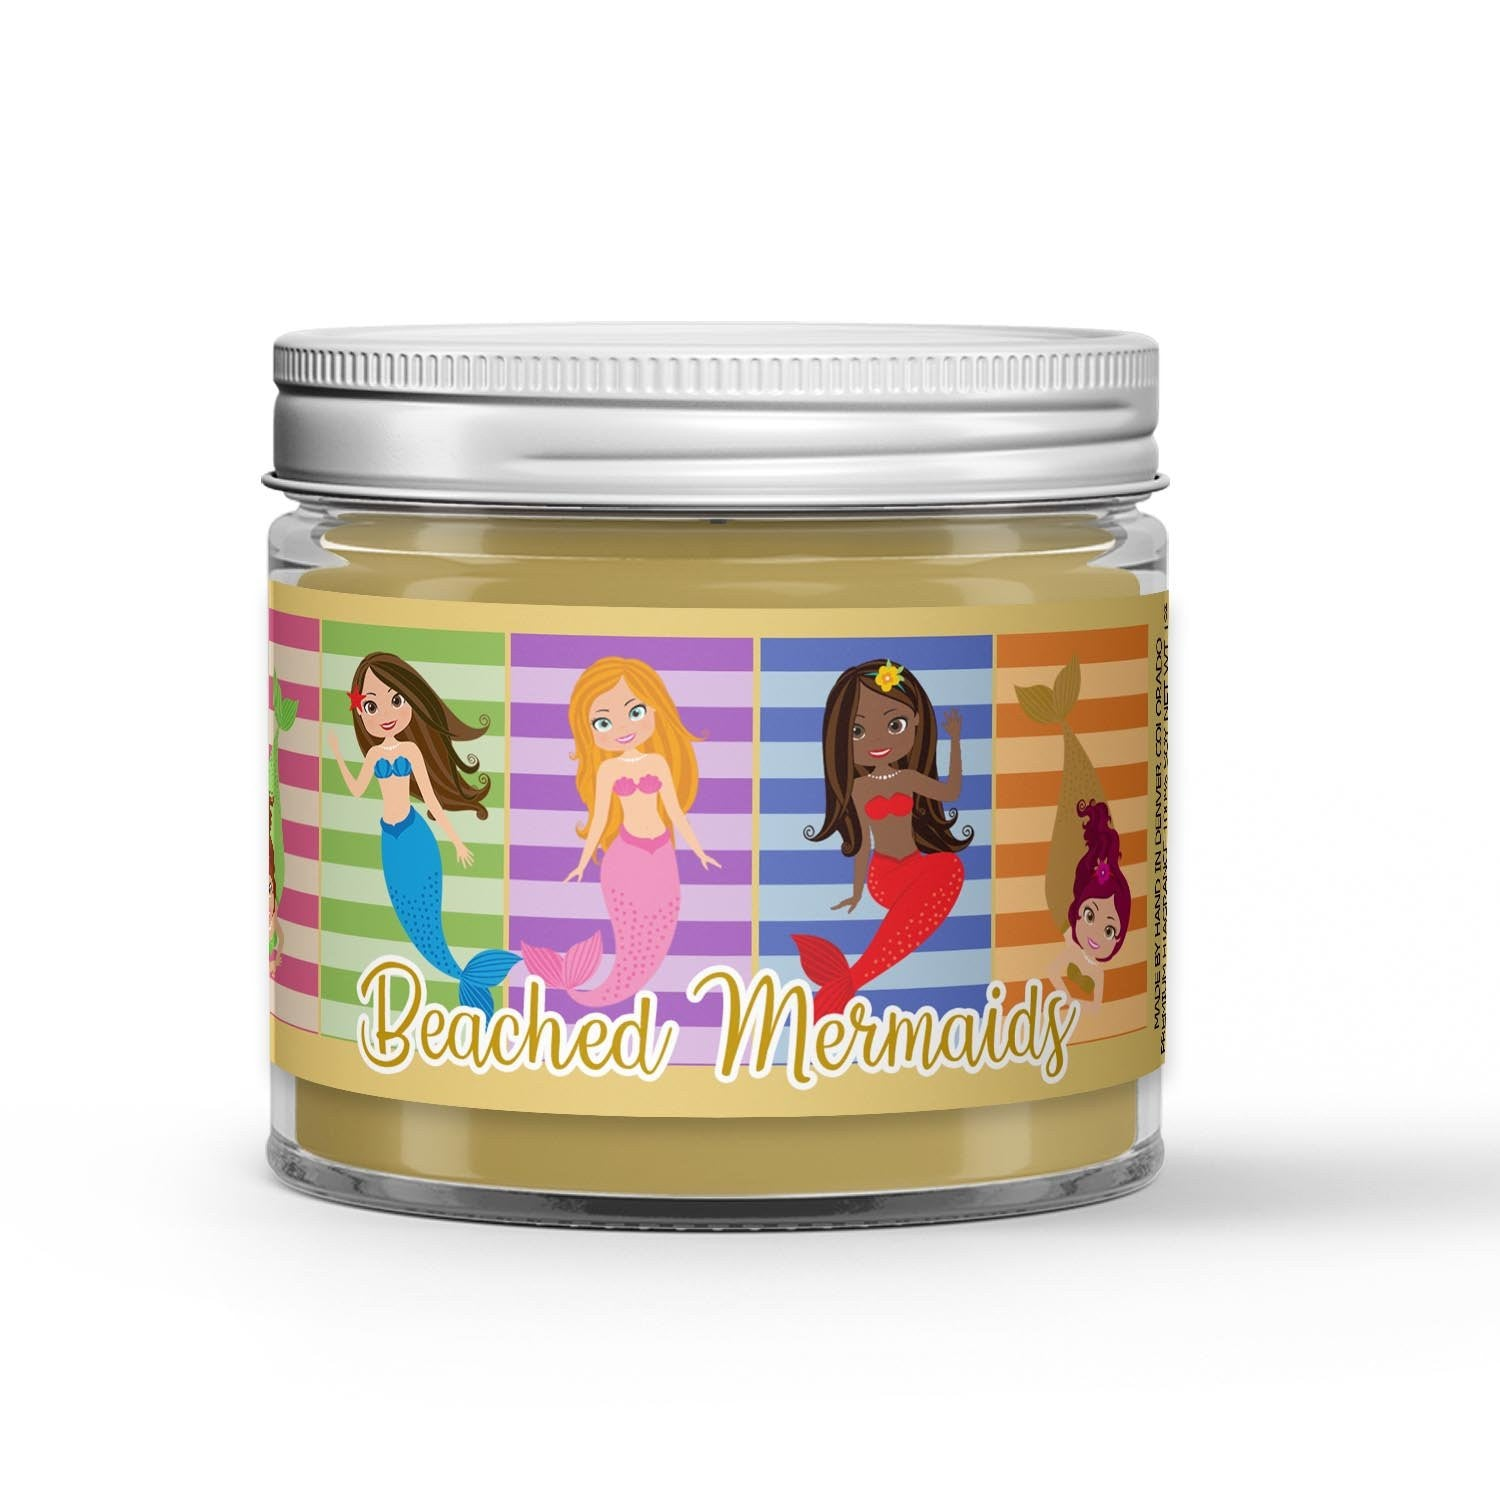 Beached Mermaid Candle